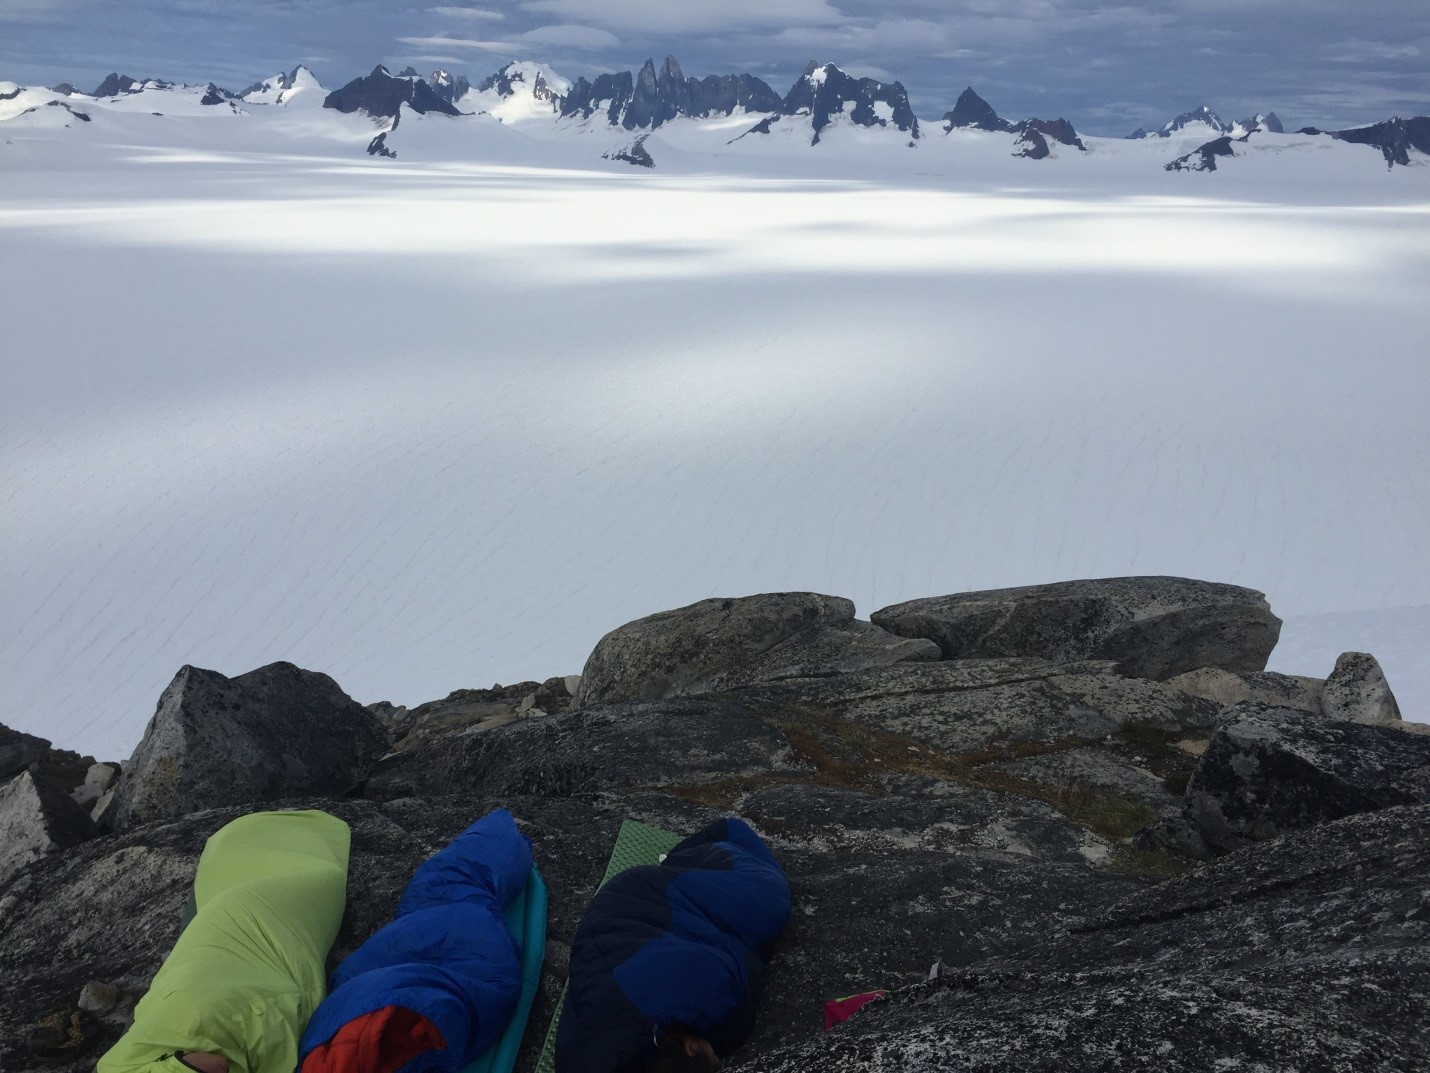 My first night in Camp 10, sleeping in the best bivy spot. The view is looking across the Taku Glacier at the Taku Towers (they can be spotted right in the middle of the peaks shown). This night included both an early morning sprinkle and a glaring sun wake-up. Photo by Auri Clark.